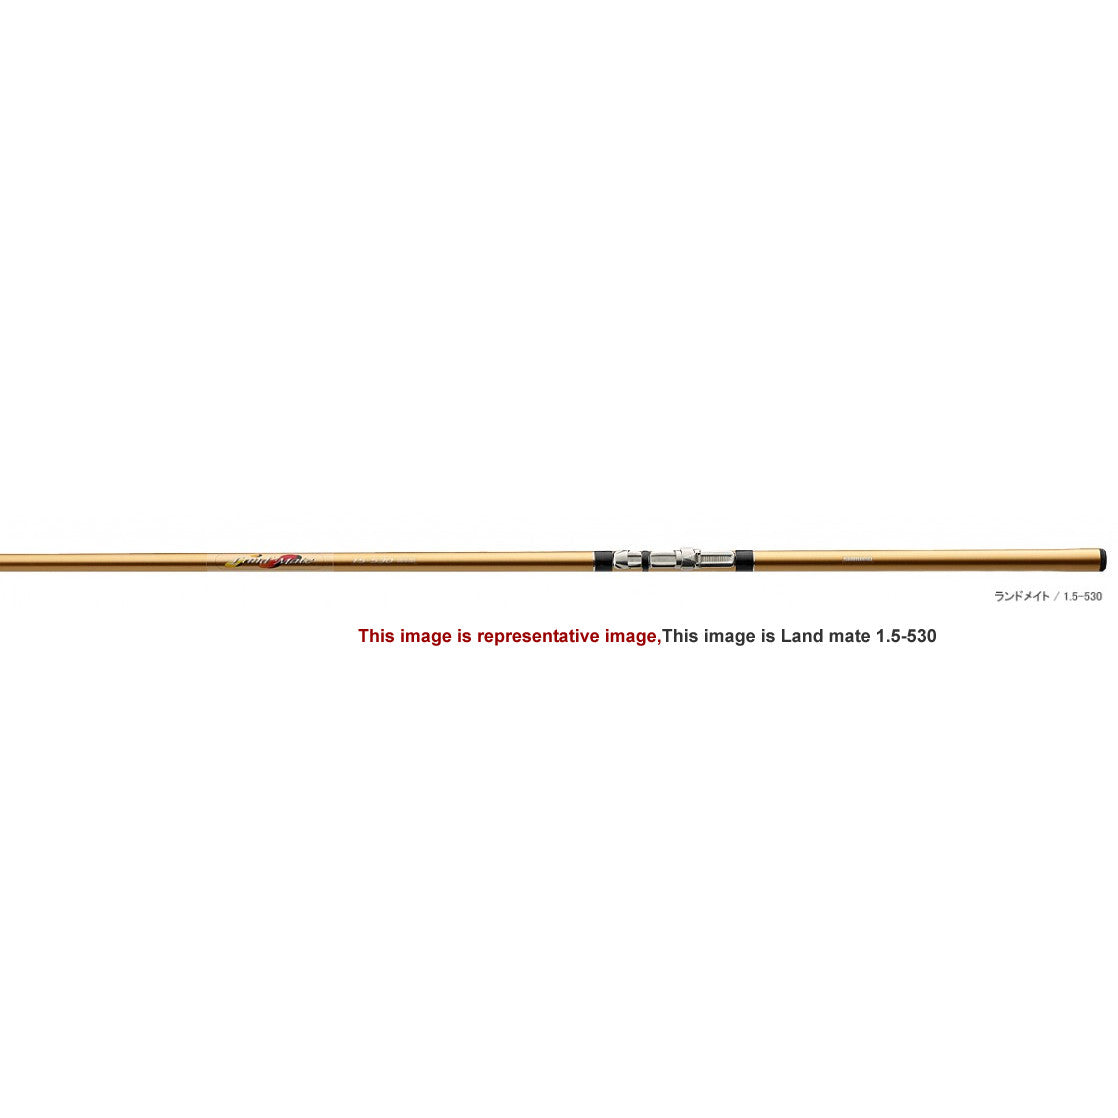 Shimano Land mate 2-450 / 240538 / Beach Rods